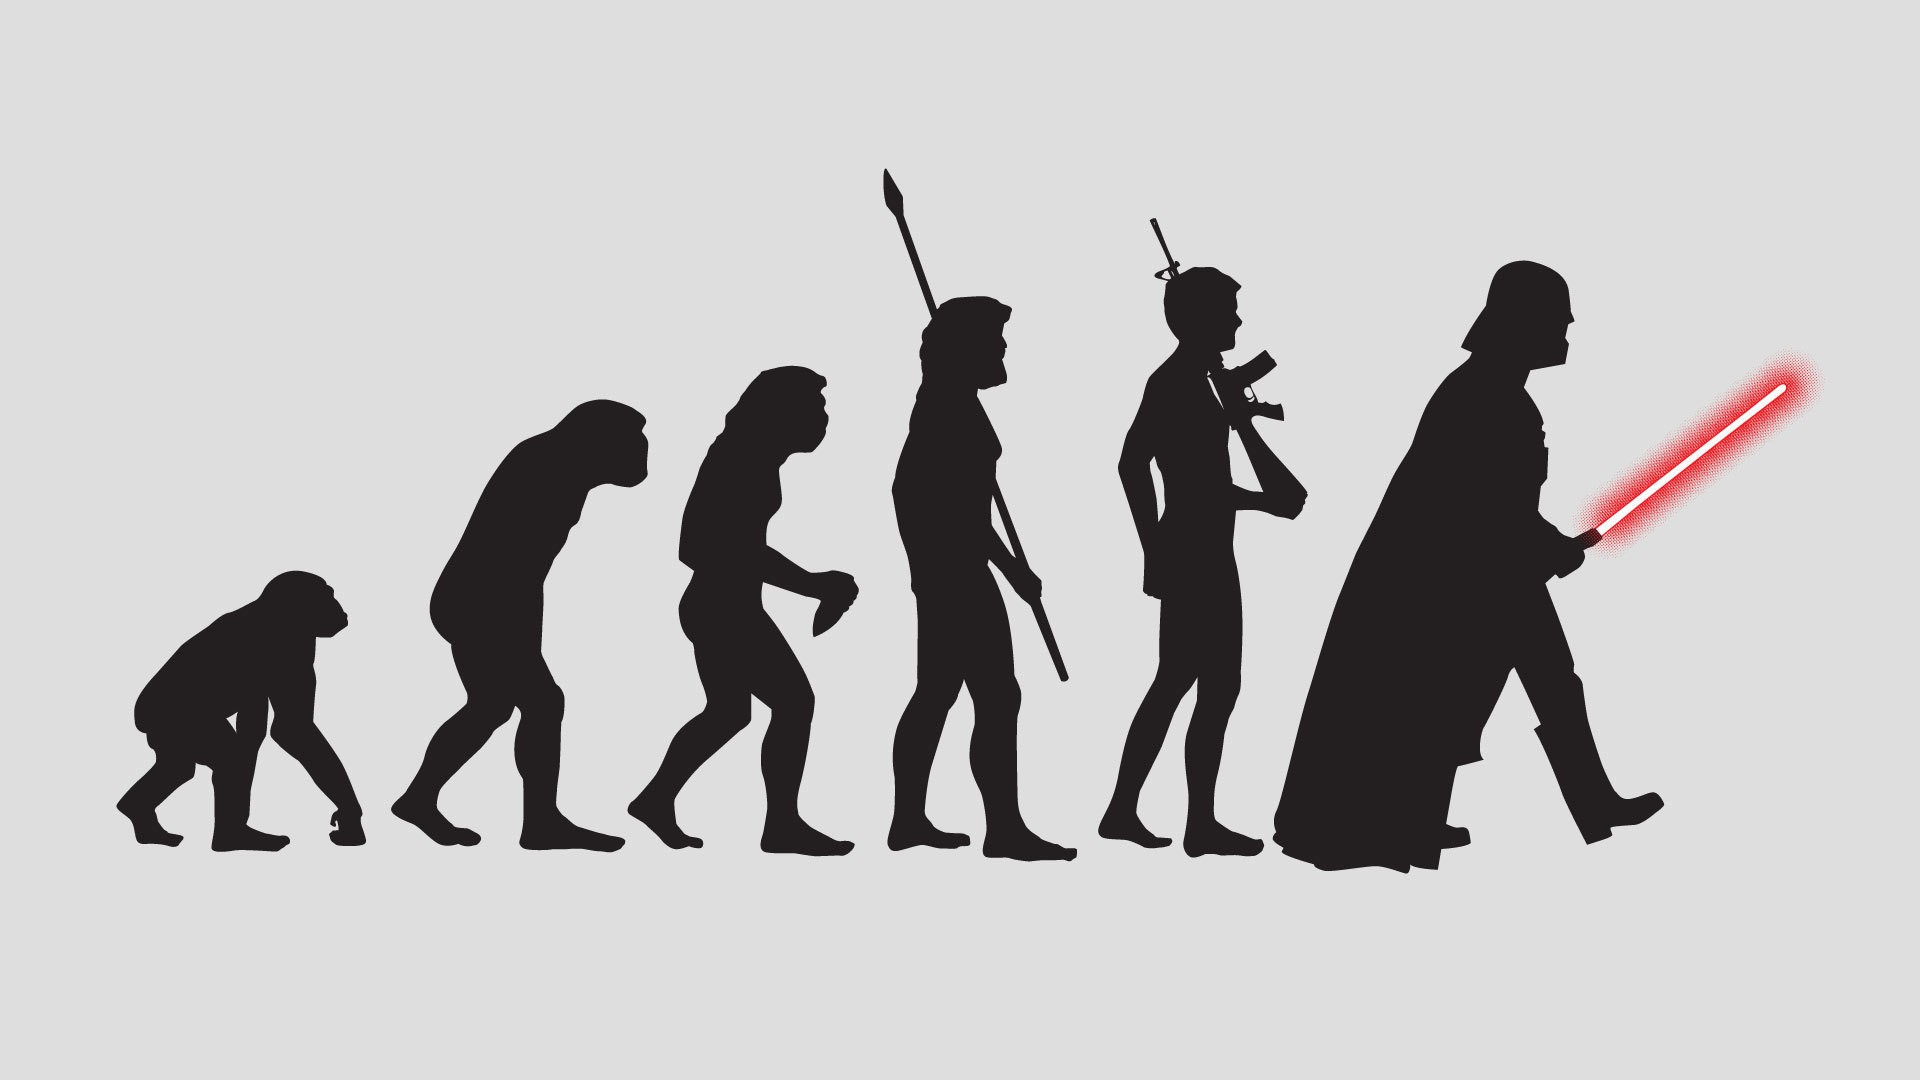 star_wars_wallpaper__evolution_of_man_by_mcnealy-d5i8t02